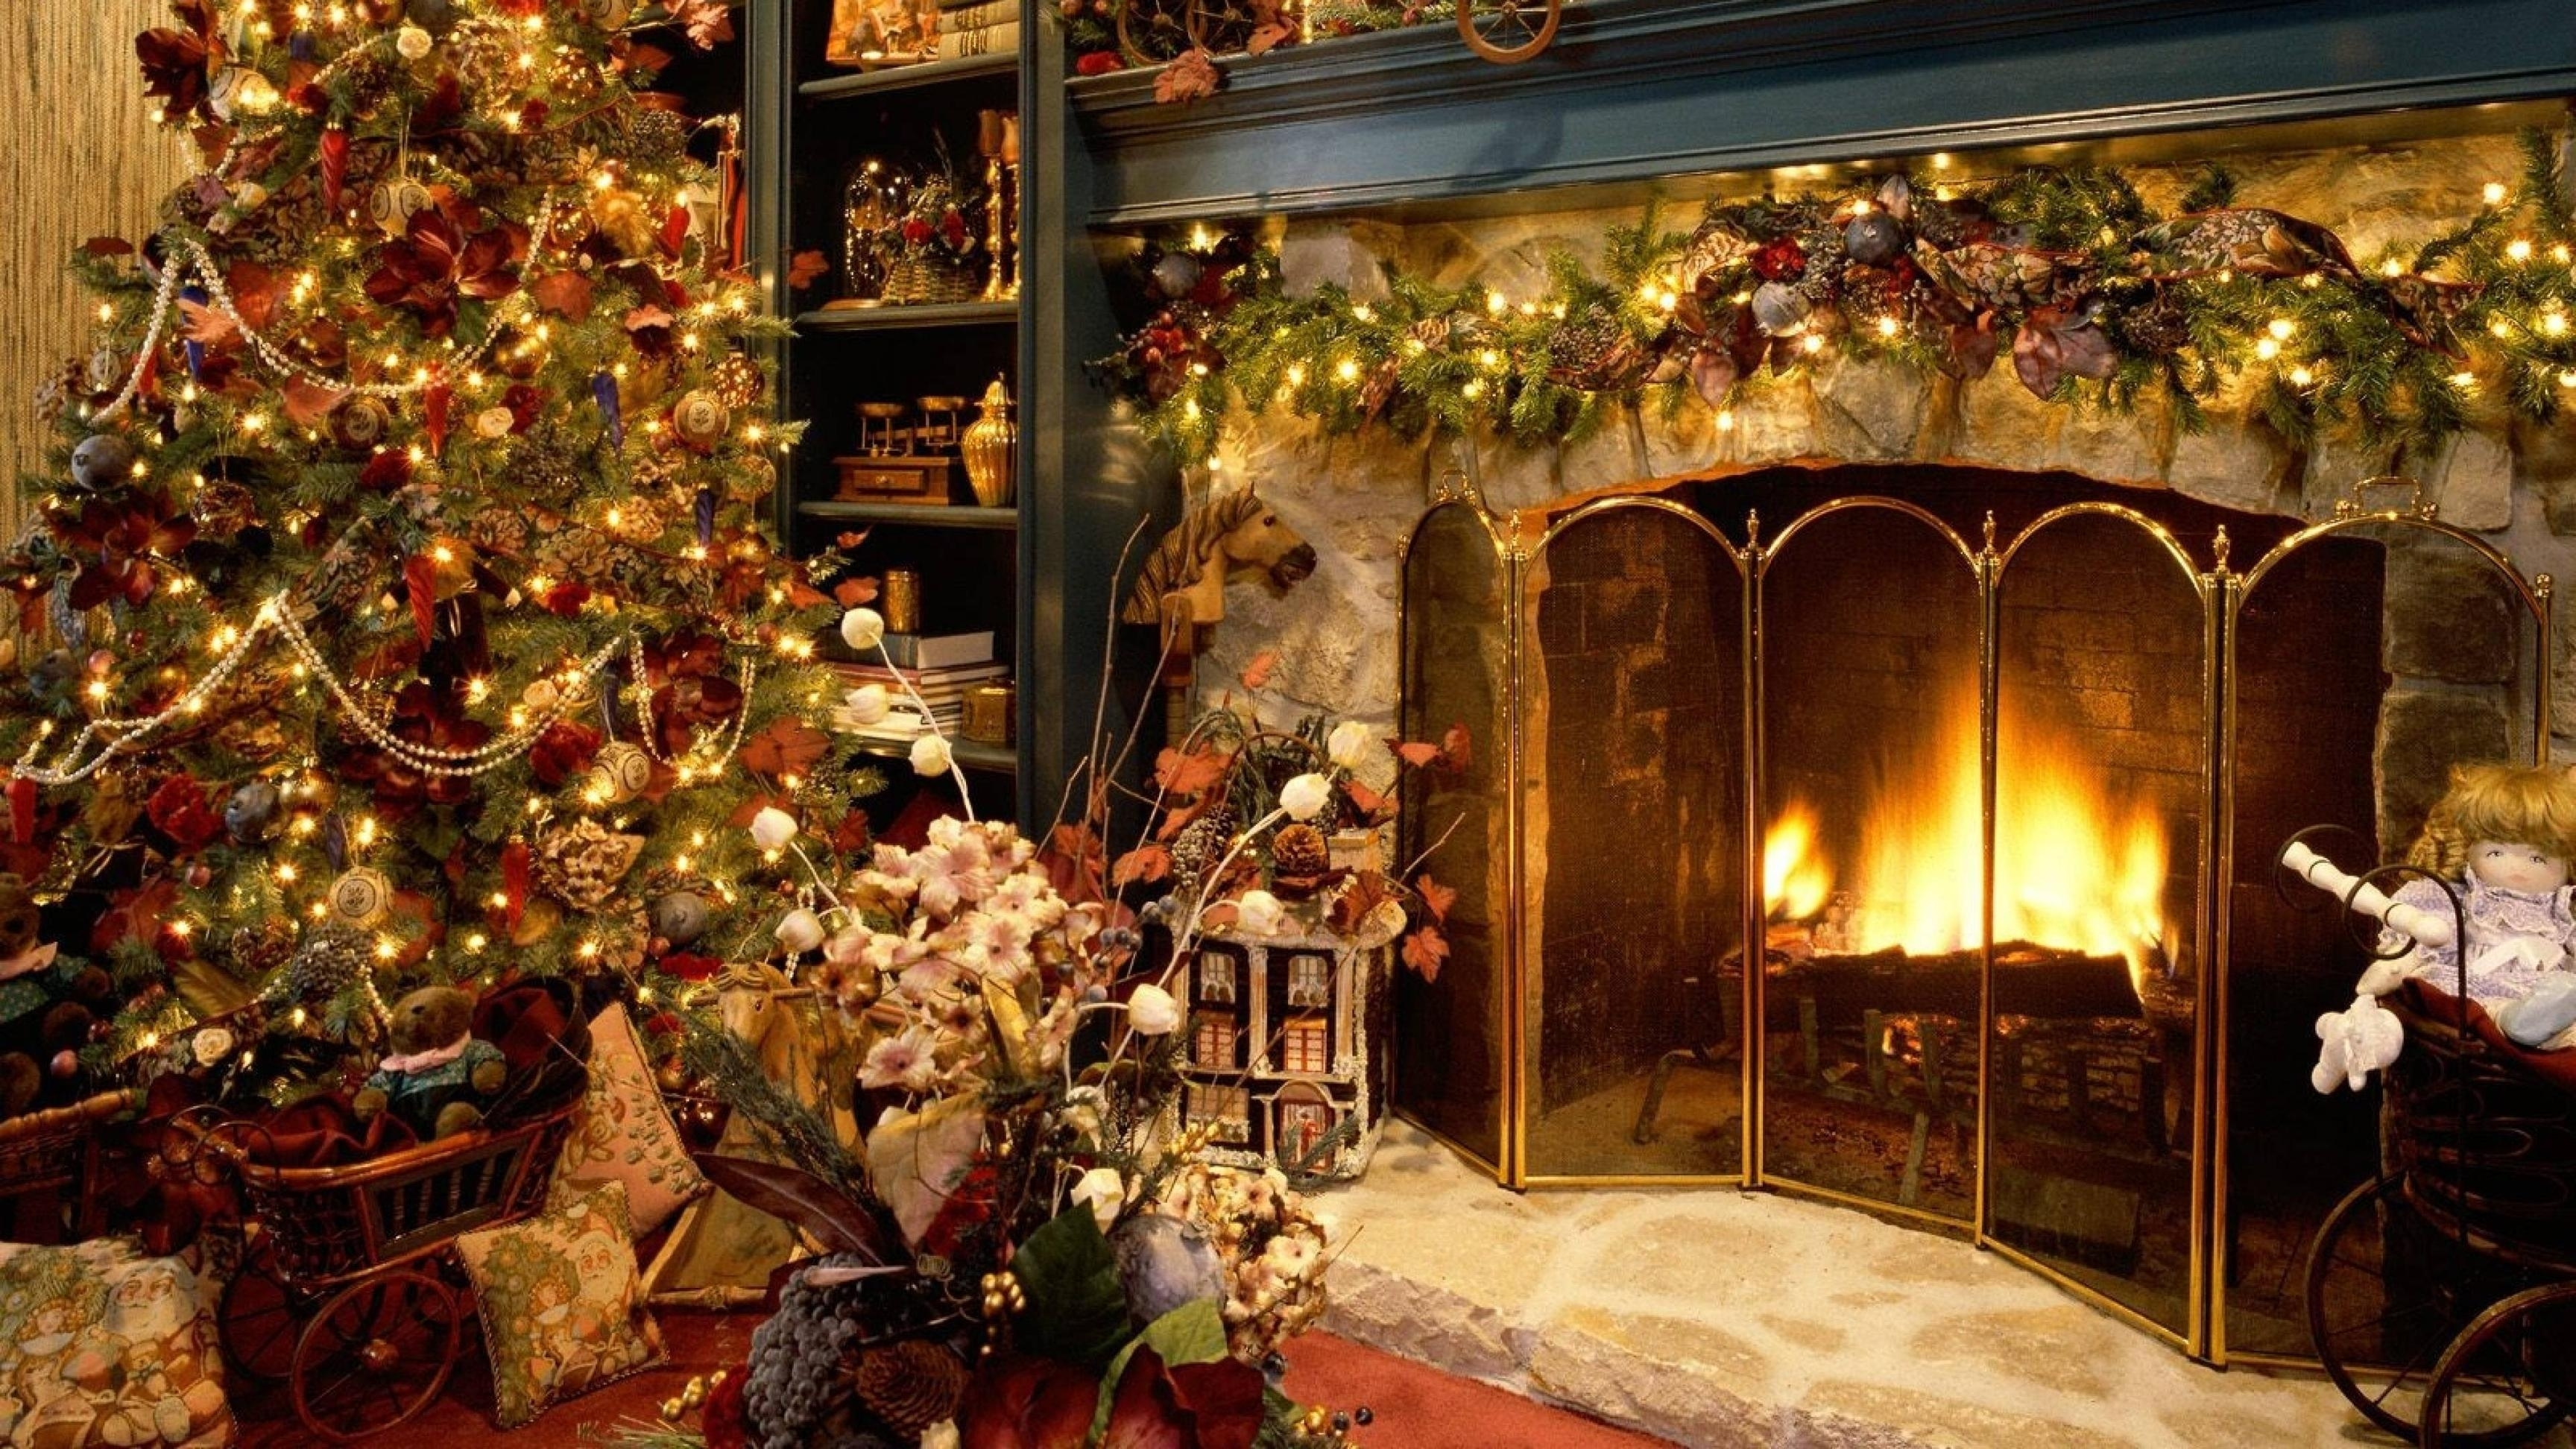 unique animated christmas fireplace desktop wallpaper collection